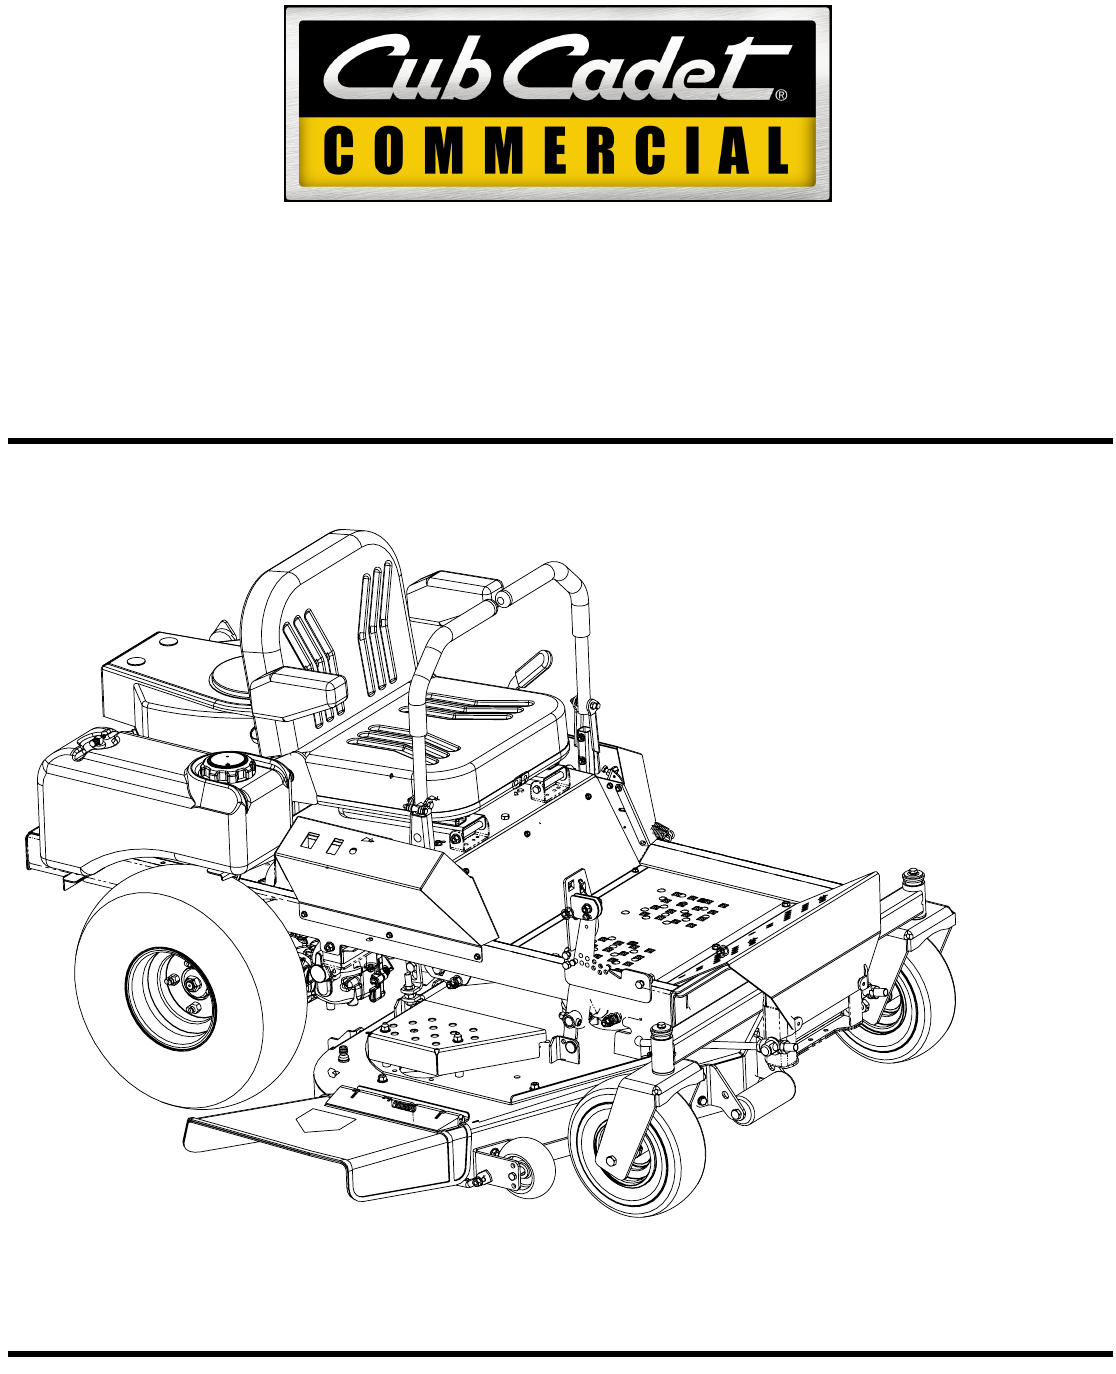 Cub Cadet Lawn Mower 44 48 54 User Guide